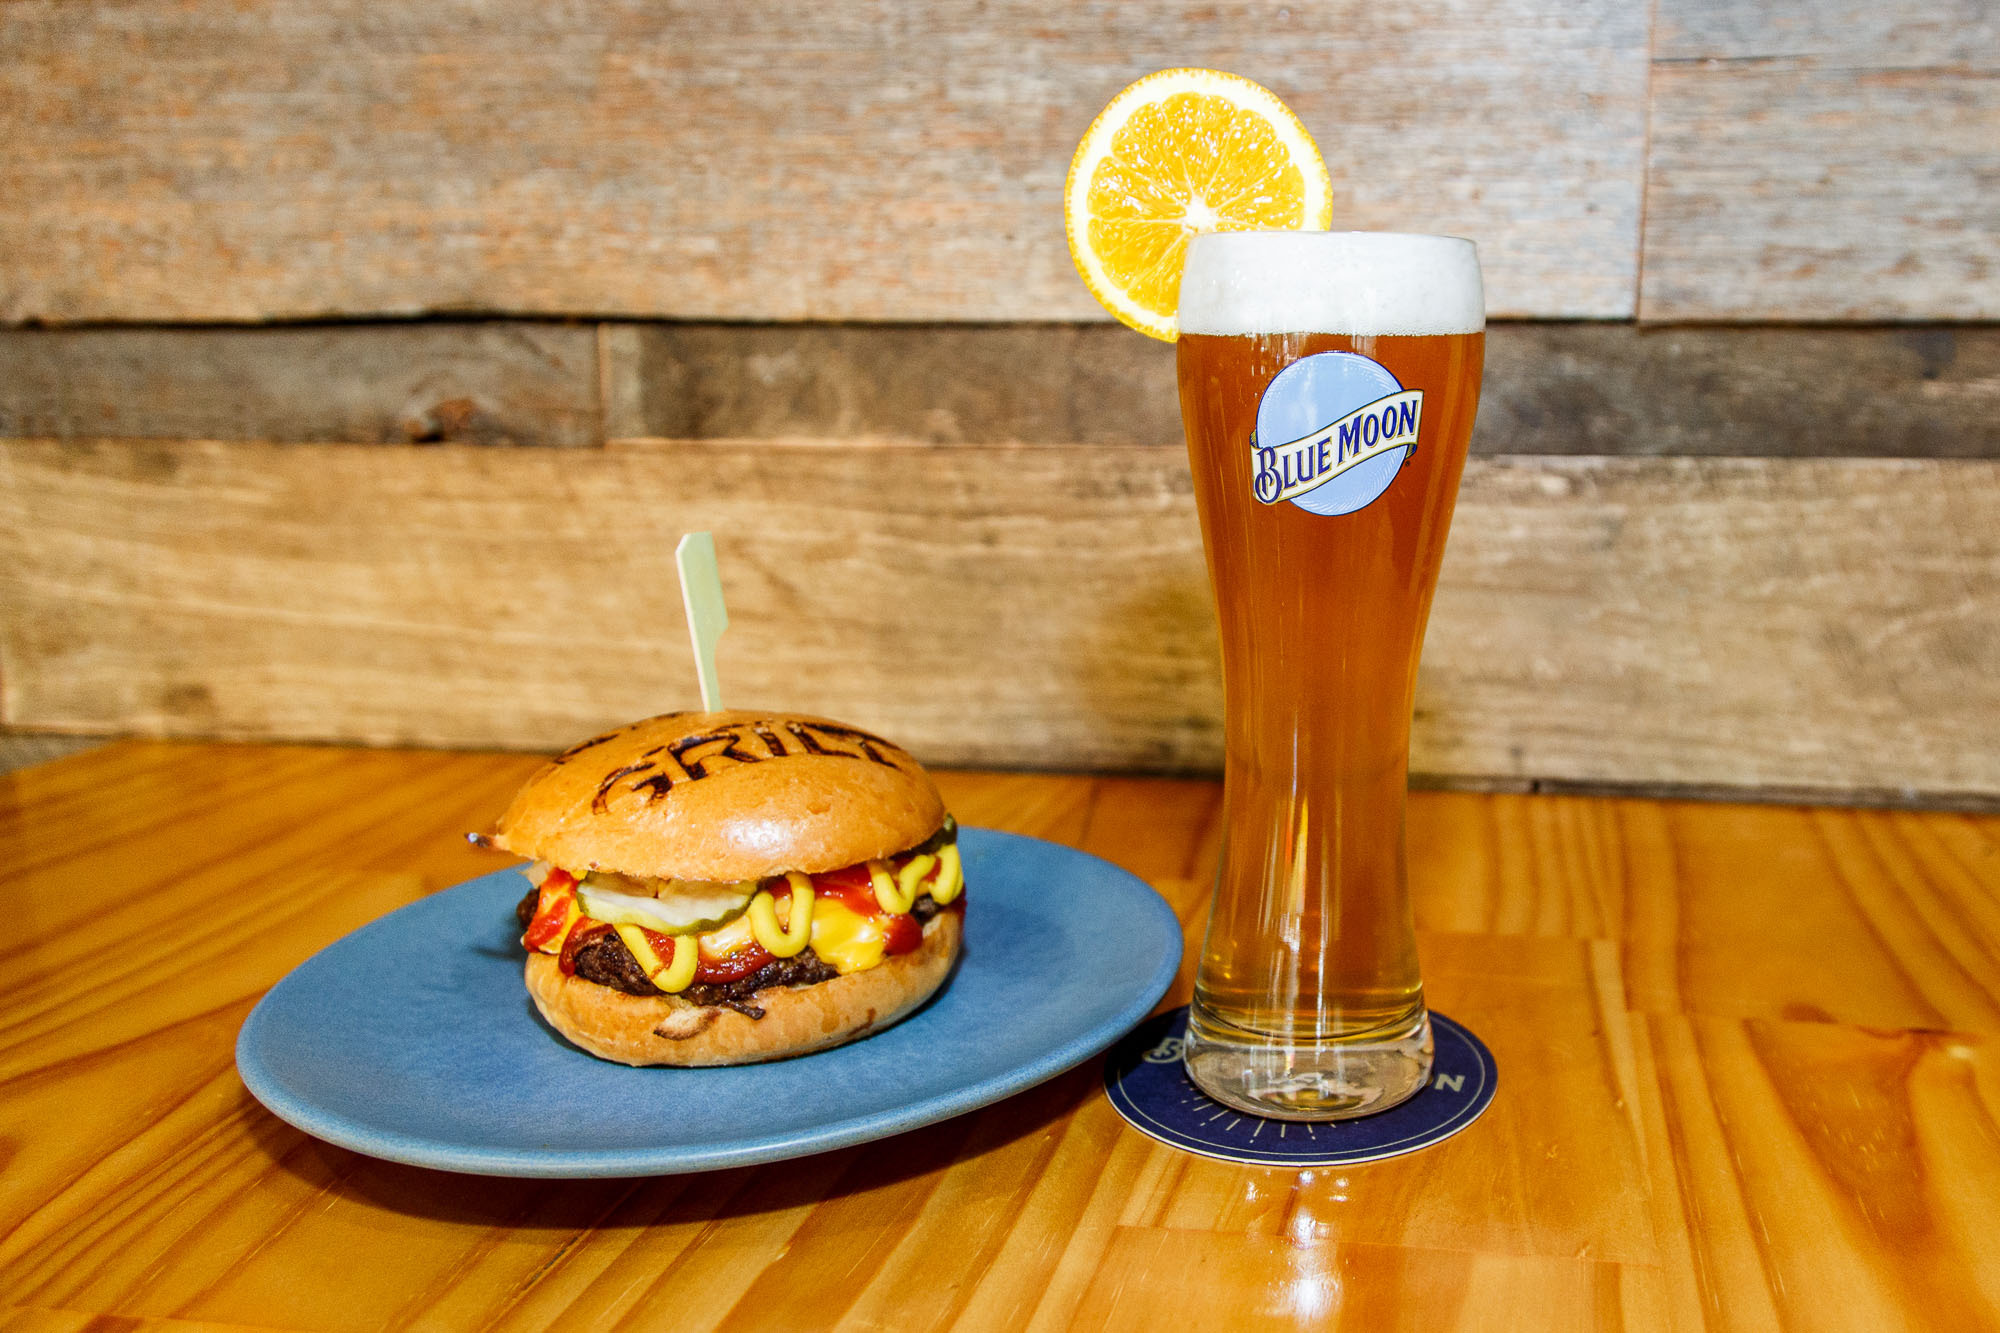 A burger and a Blue Moon beer